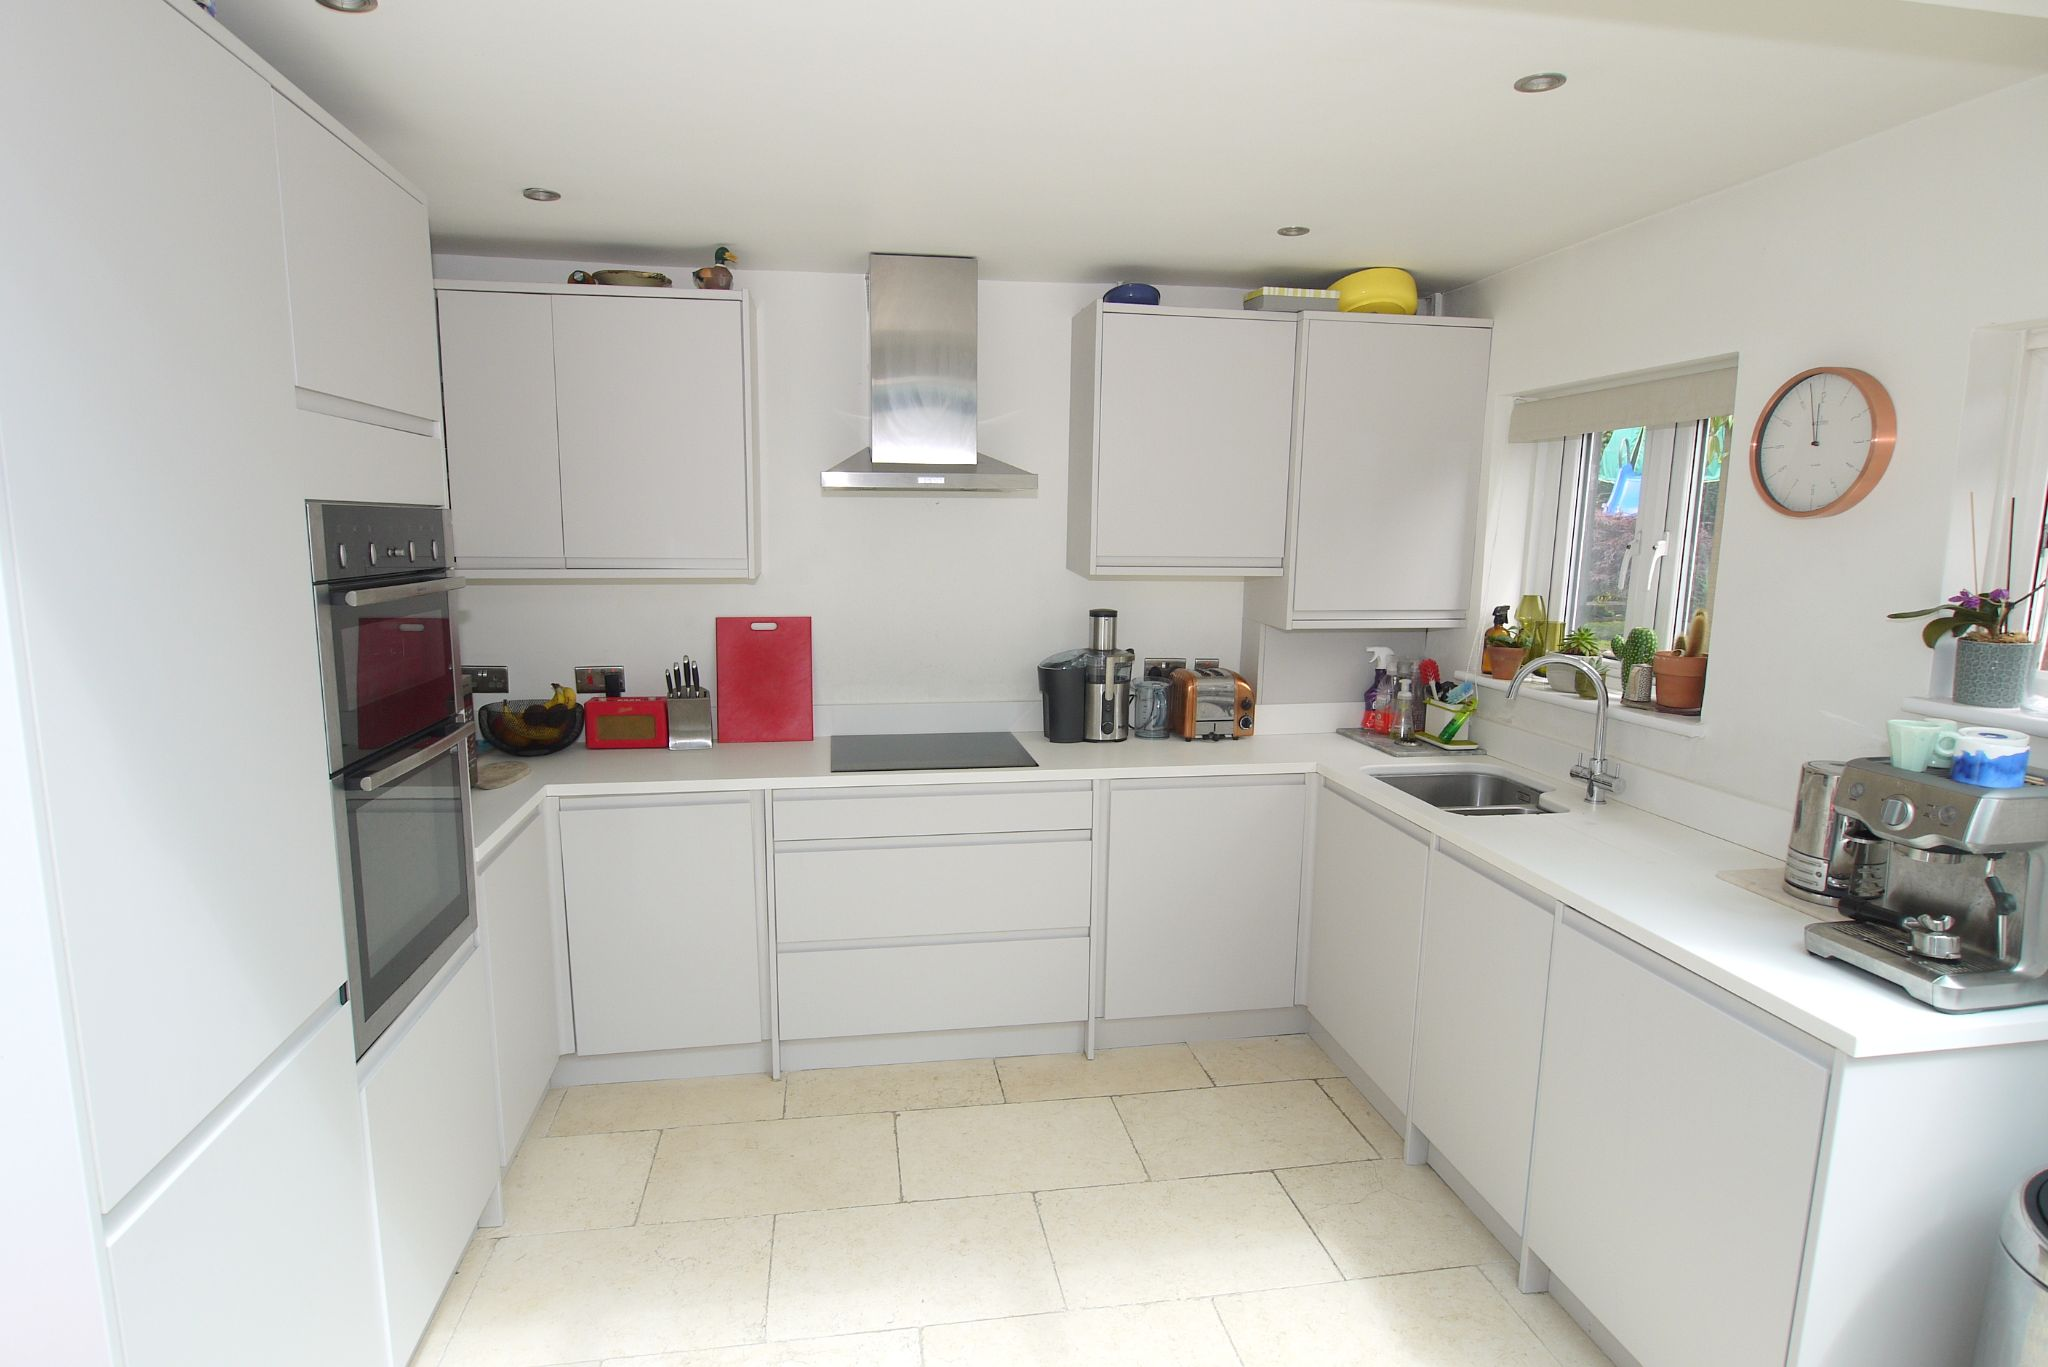 2 bedroom mid terraced house Sold in Seal - Photograph 3